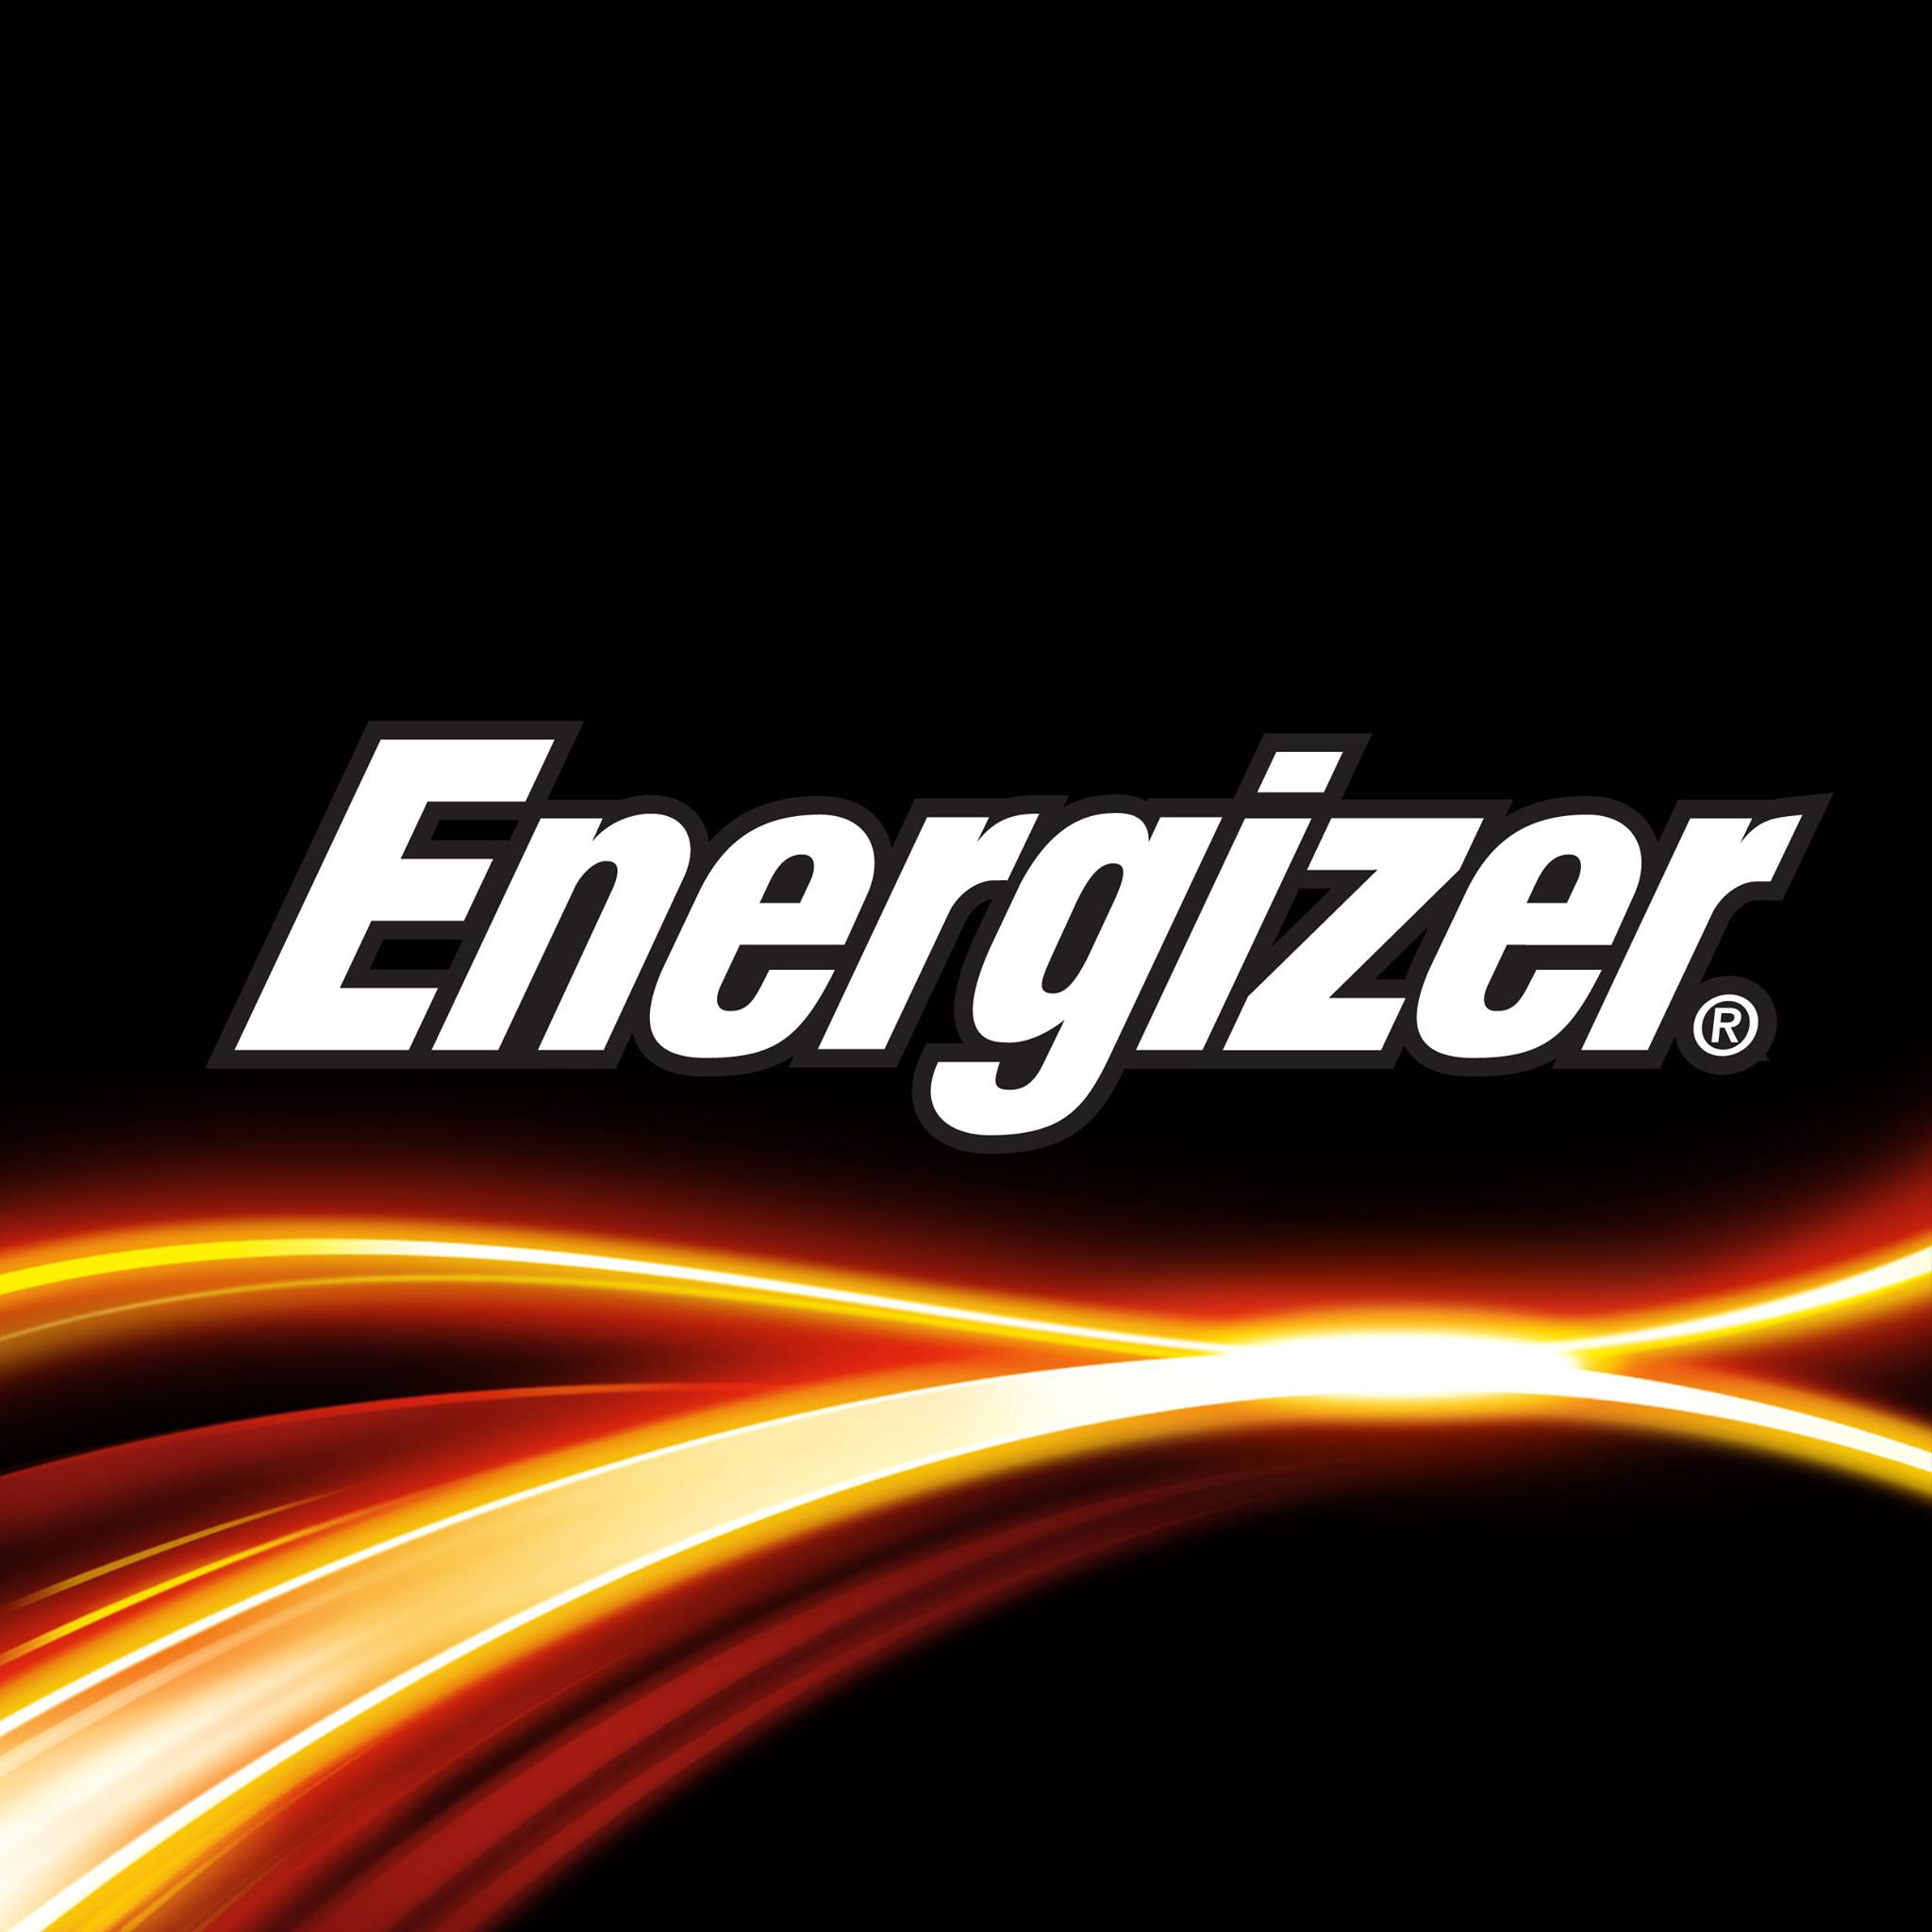 518073fcdc Energizer Holdings, Inc. announces pricing of $500 million of senior ...